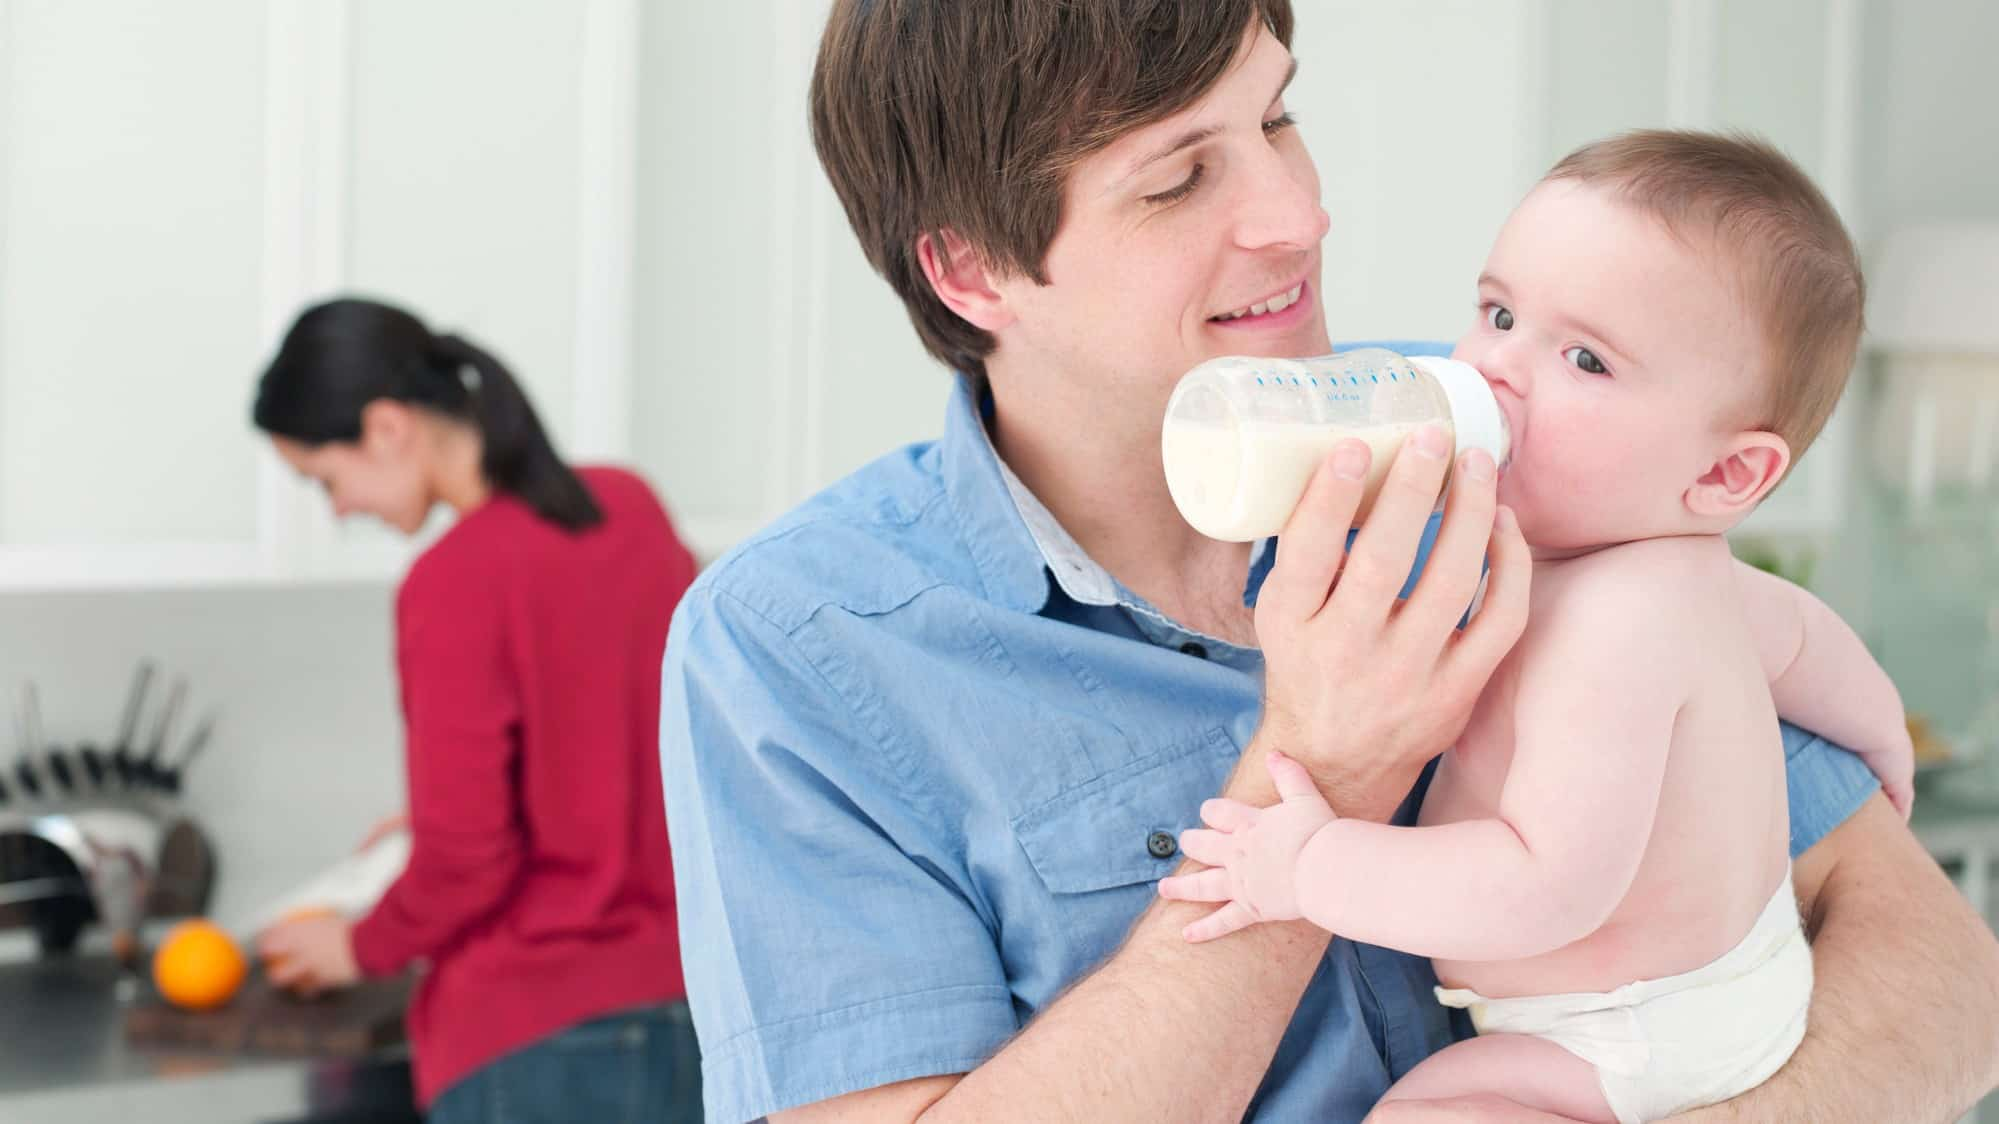 happy man feeding baby in the home kitchen